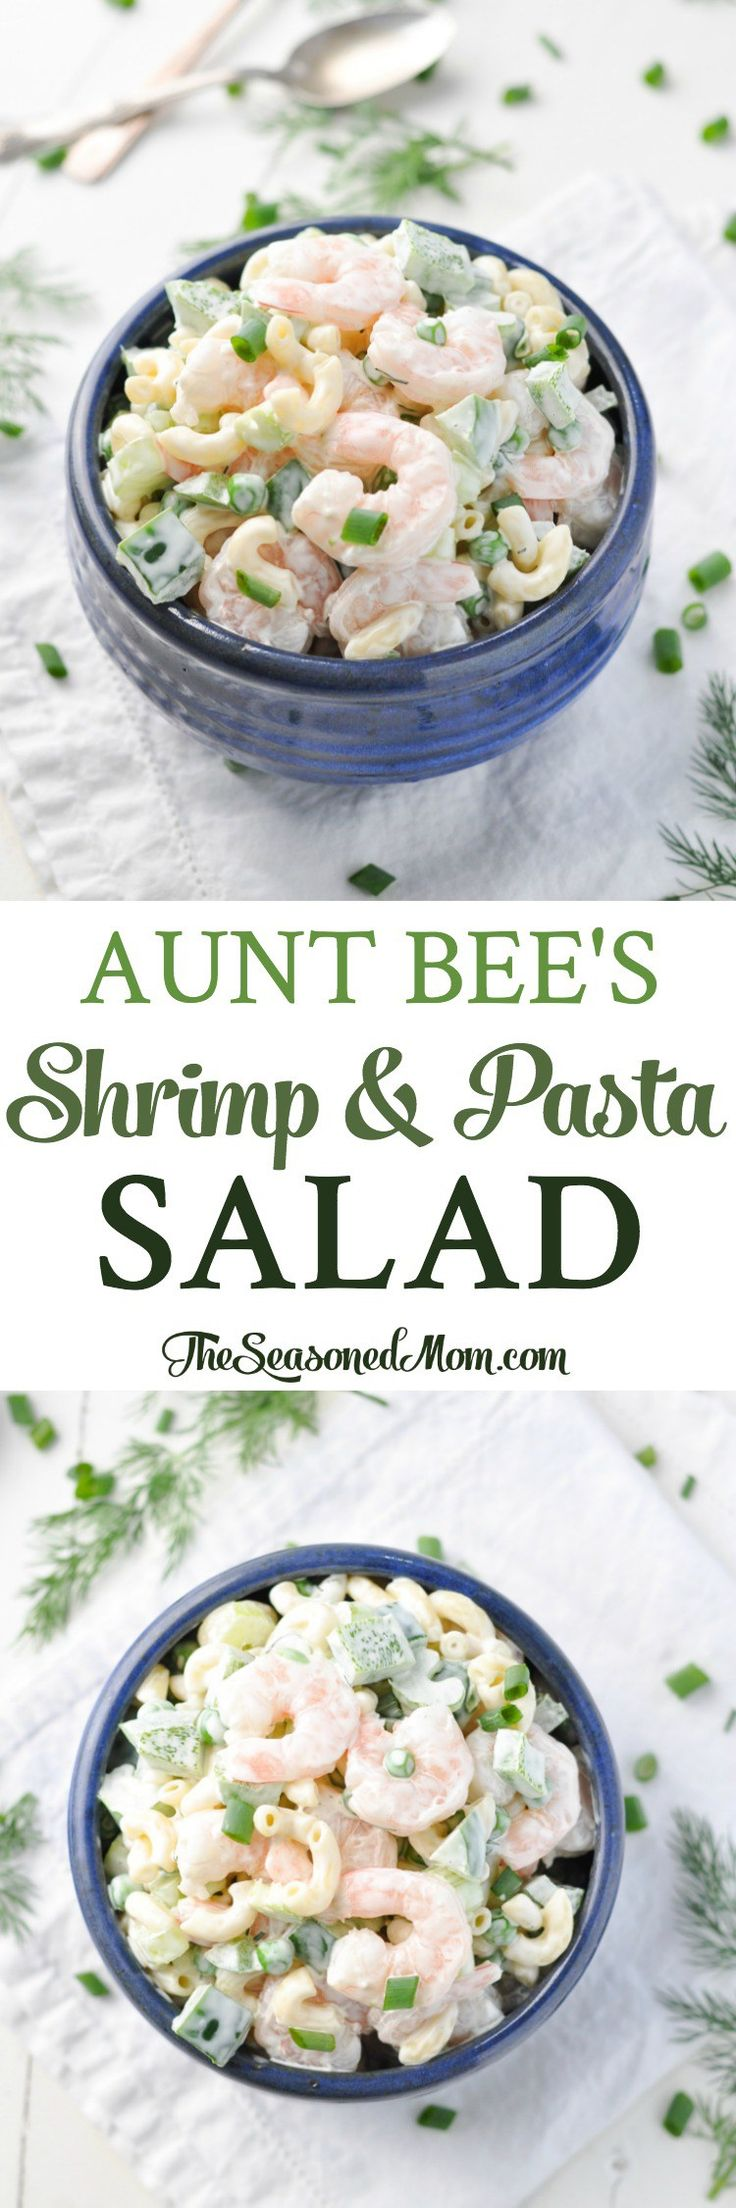 Aunt Bee's Shrimp and Pasta Salad is a light dish that is versatile and simply delicious!